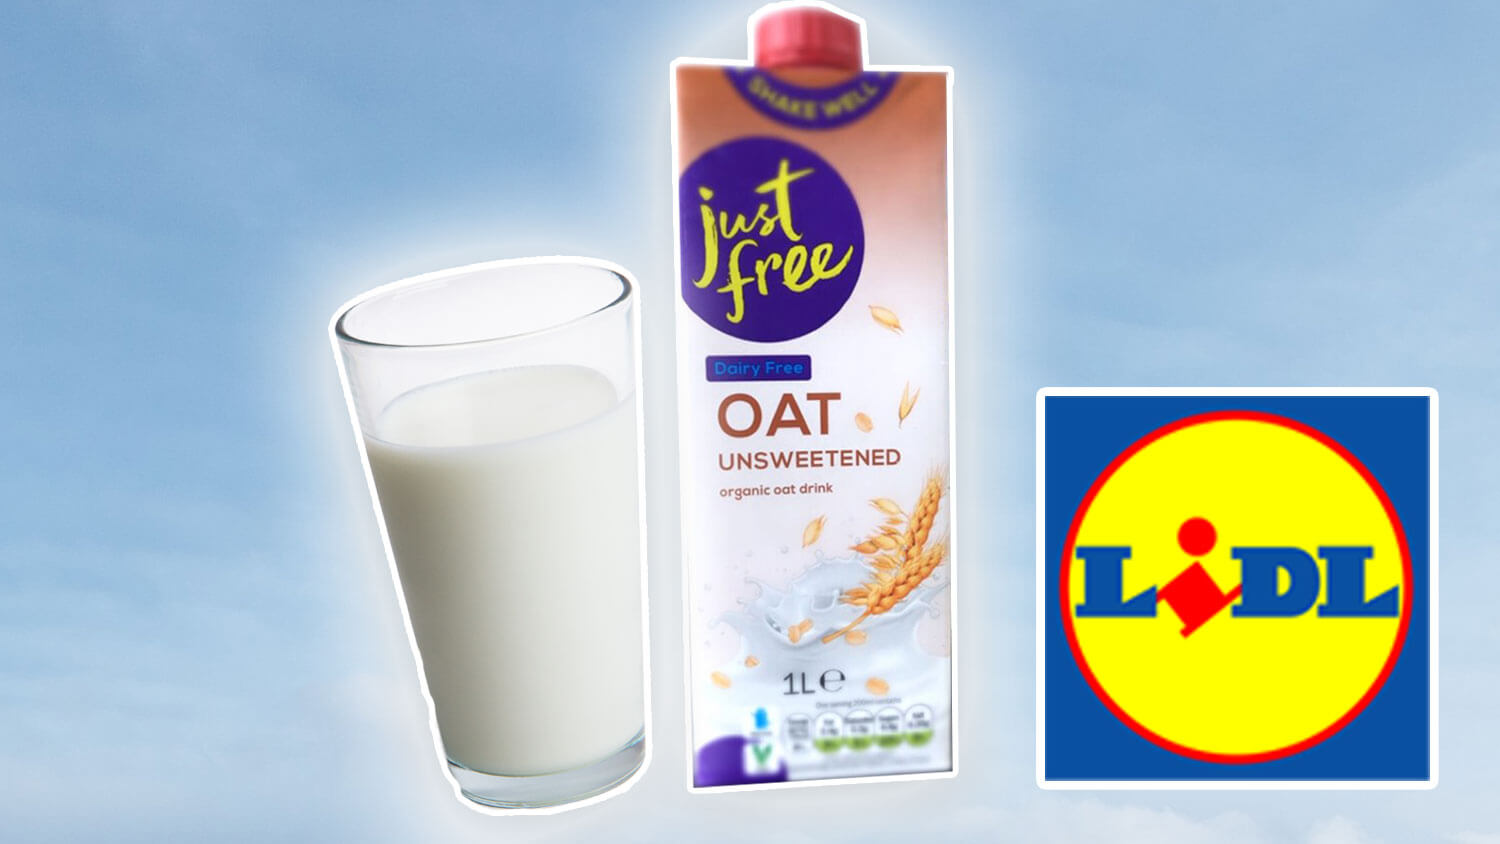 Budget Almond and Oat Milk Launch At Lidl